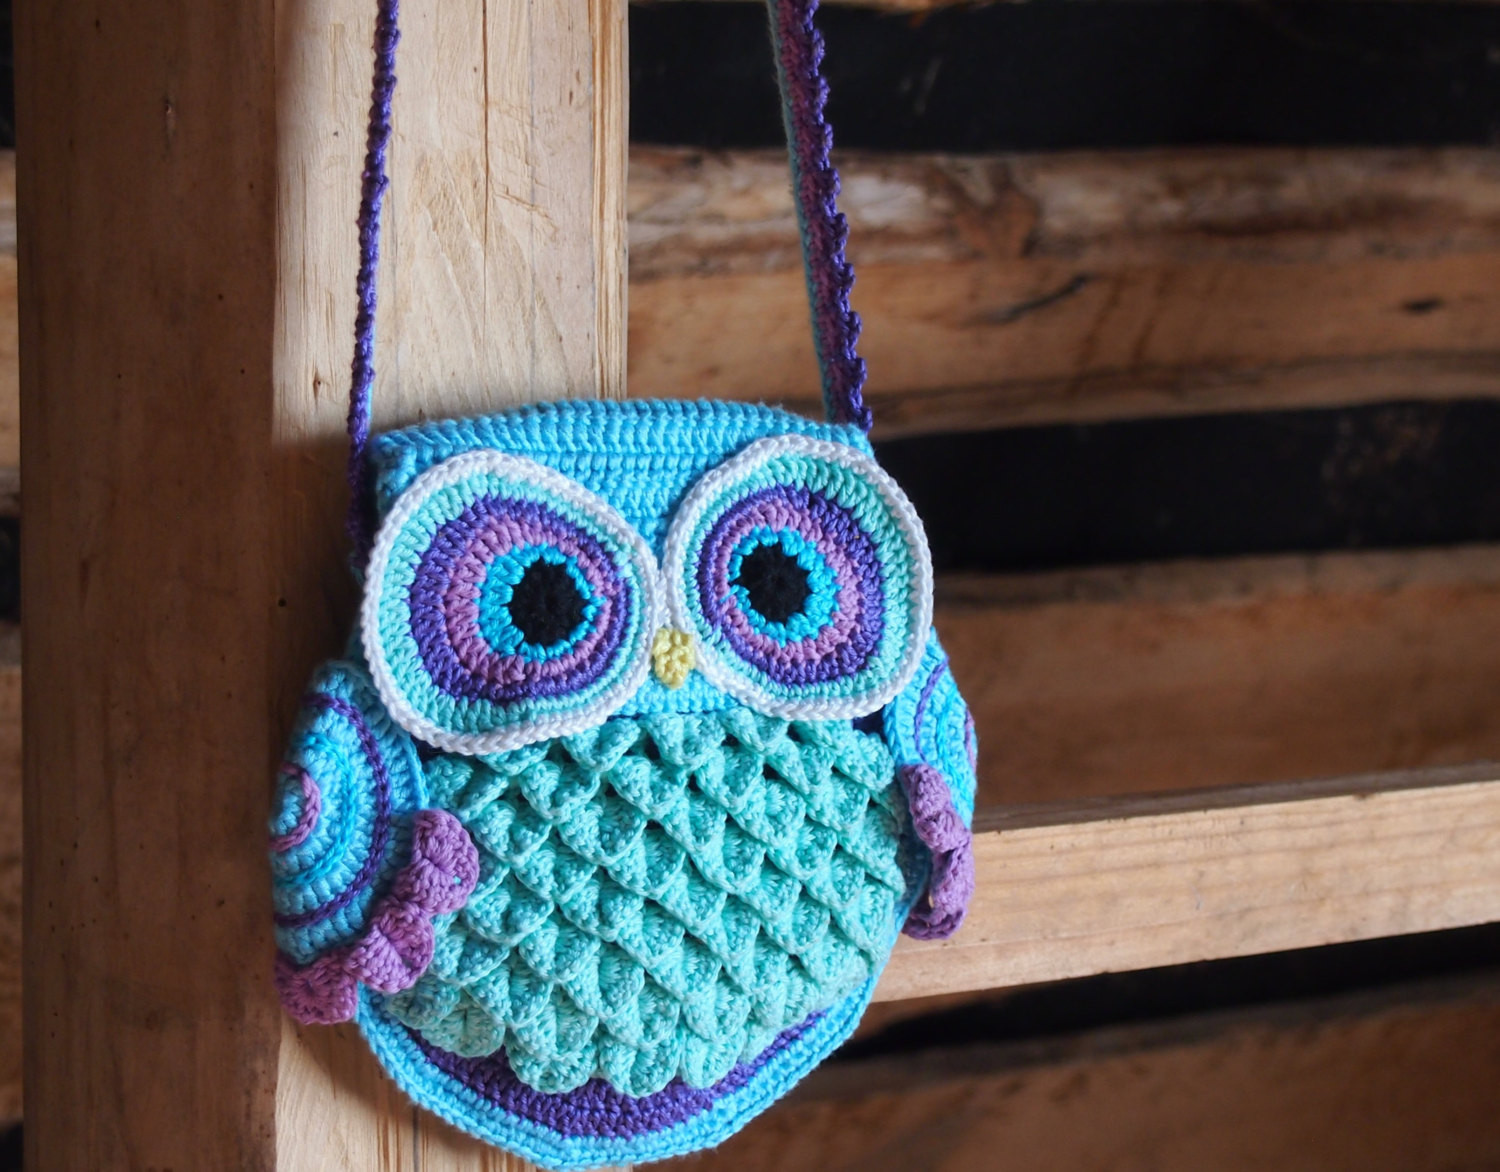 Crochet Purse Pattern Best Of Crochet Bag Pattern Crochet Owl Pattern Crochet Purse Of Adorable 44 Photos Crochet Purse Pattern